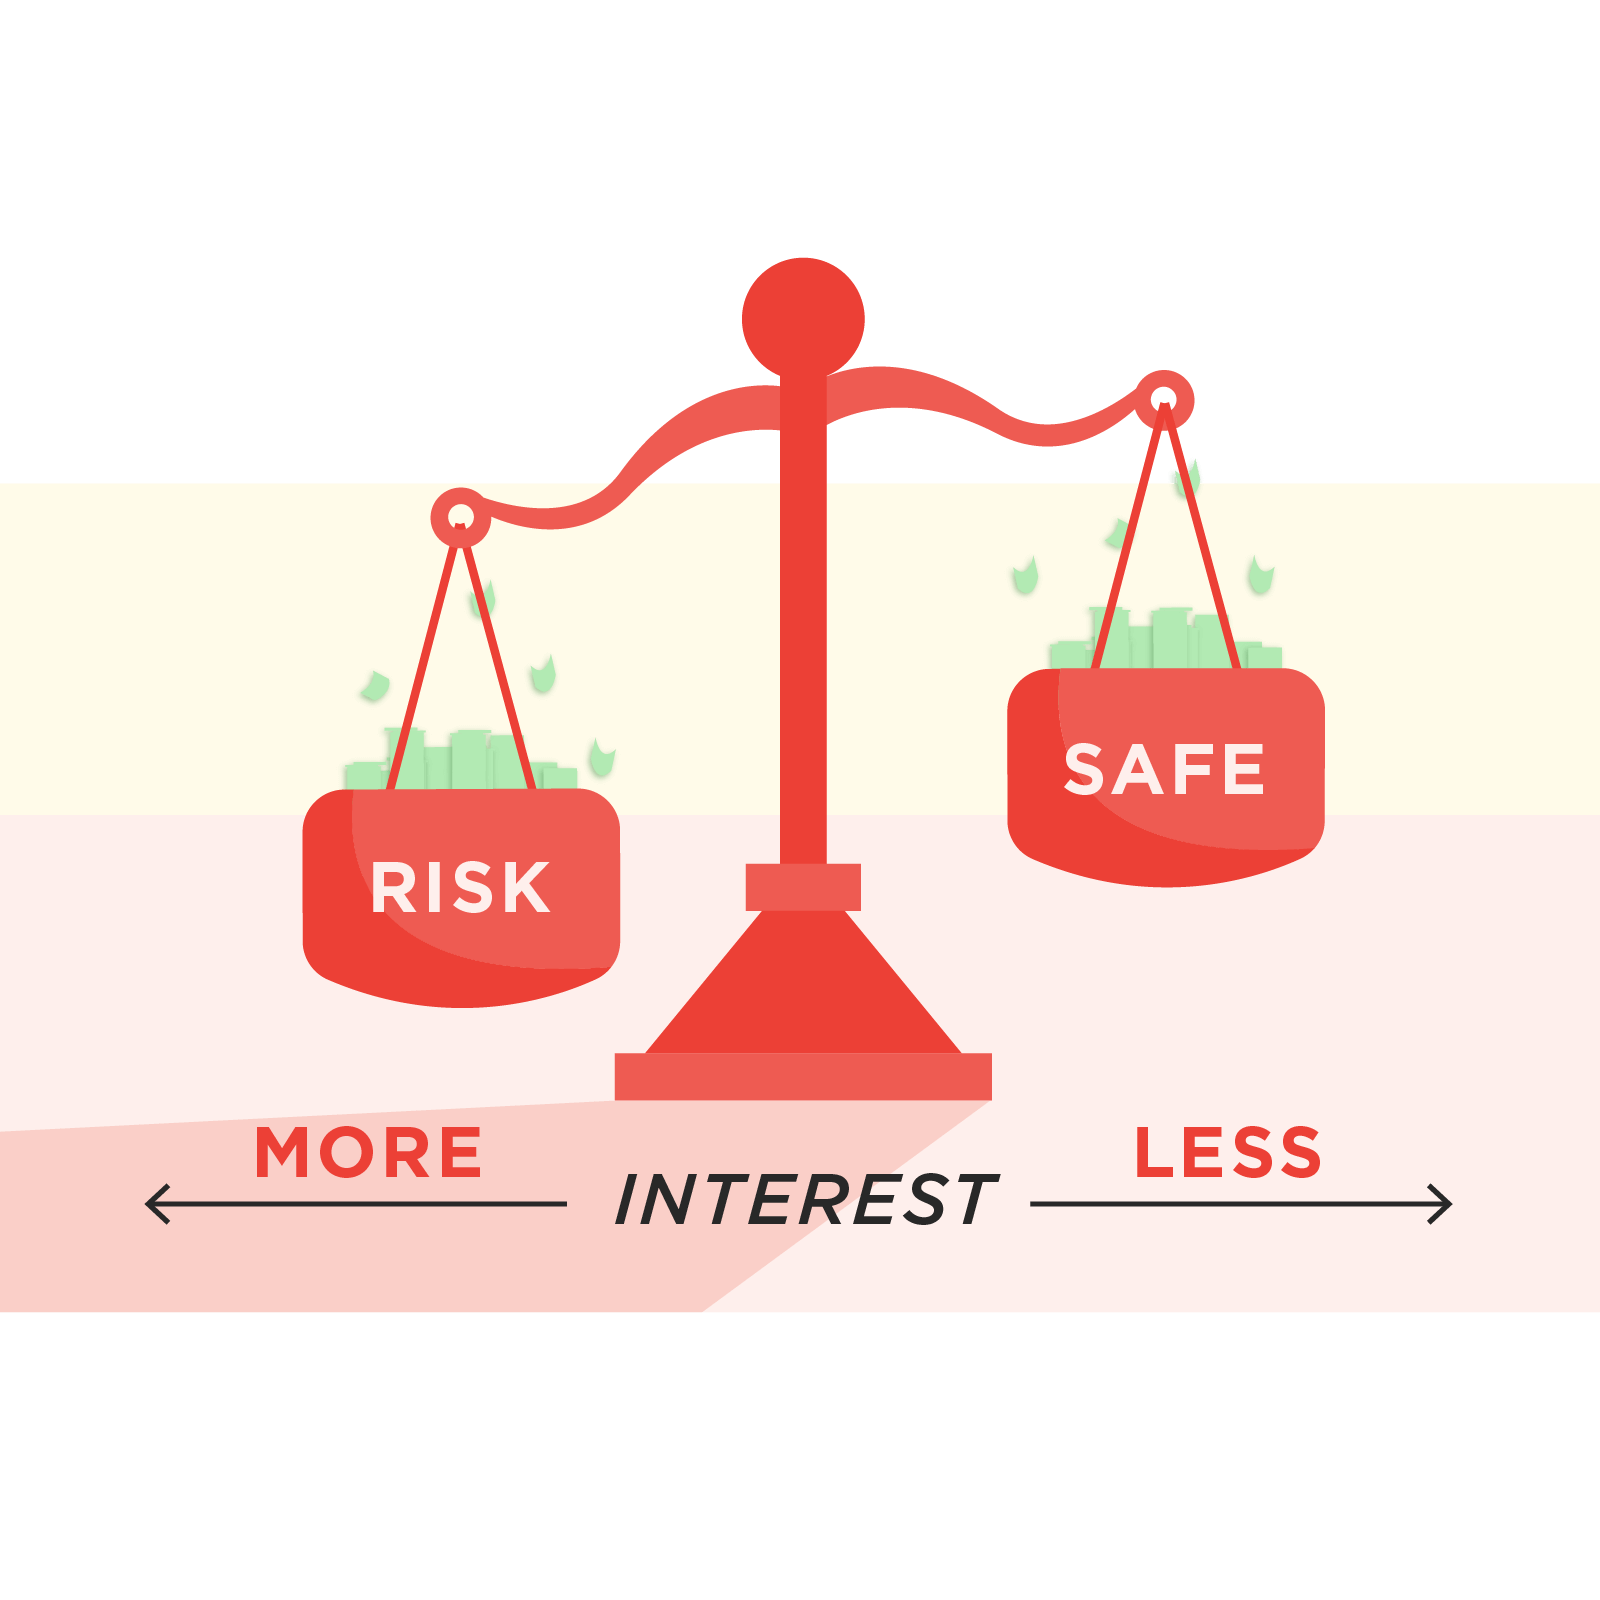 Scales with risk and safe relative to higher and lower interest